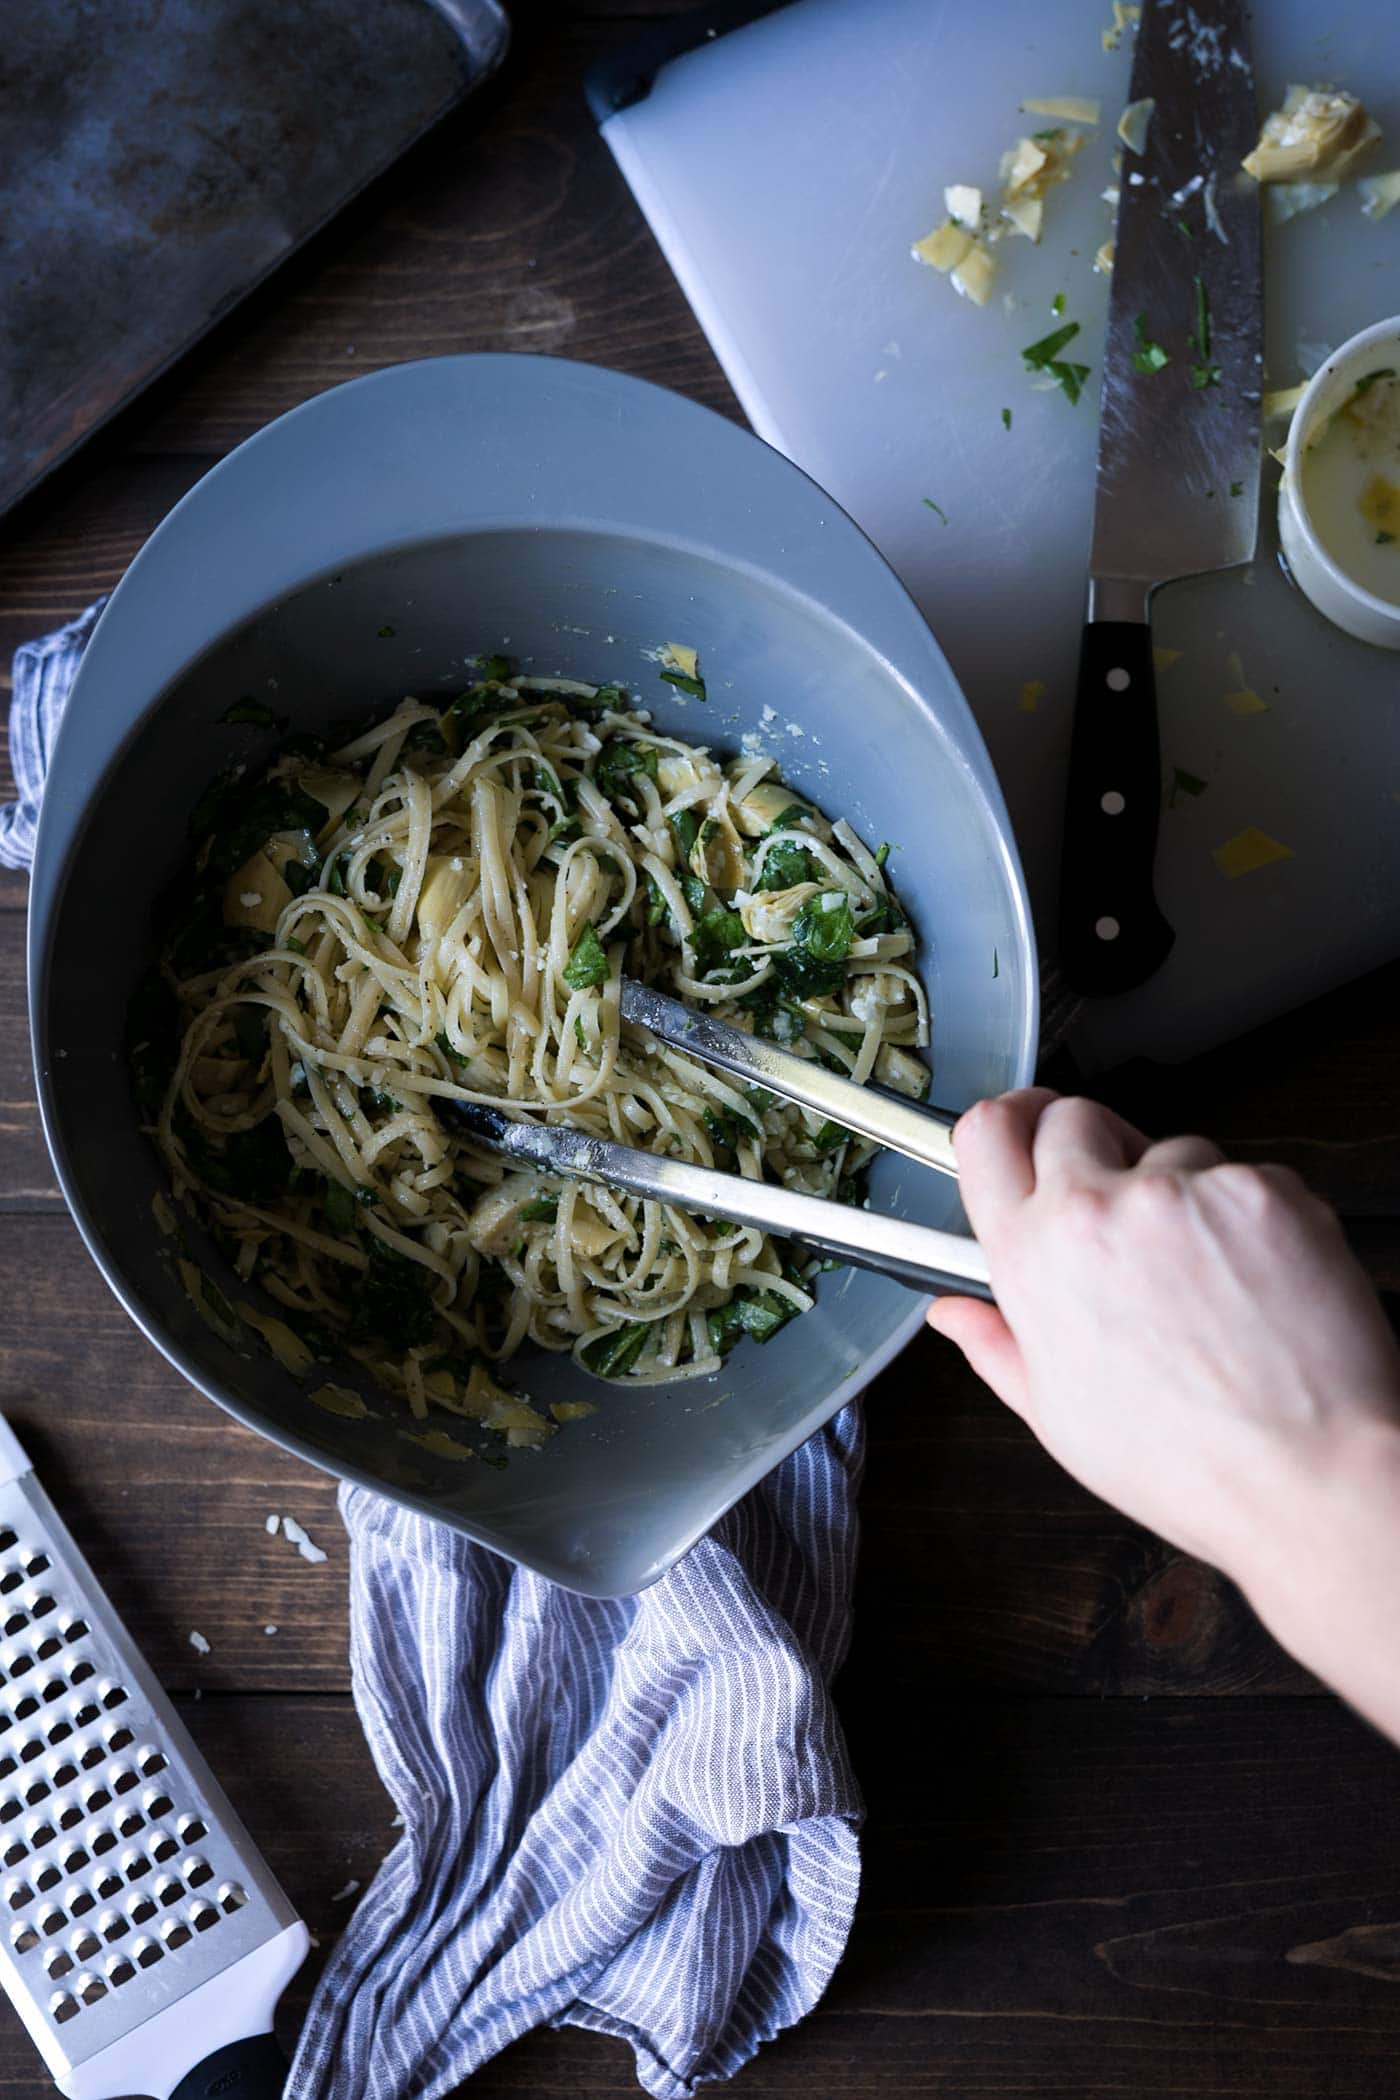 Cheesy Spinach and Artichoke Pasta is a simple, comforting meal that comes together in less than 20 minutes. Only 6 ingredients! SavorySimple.net